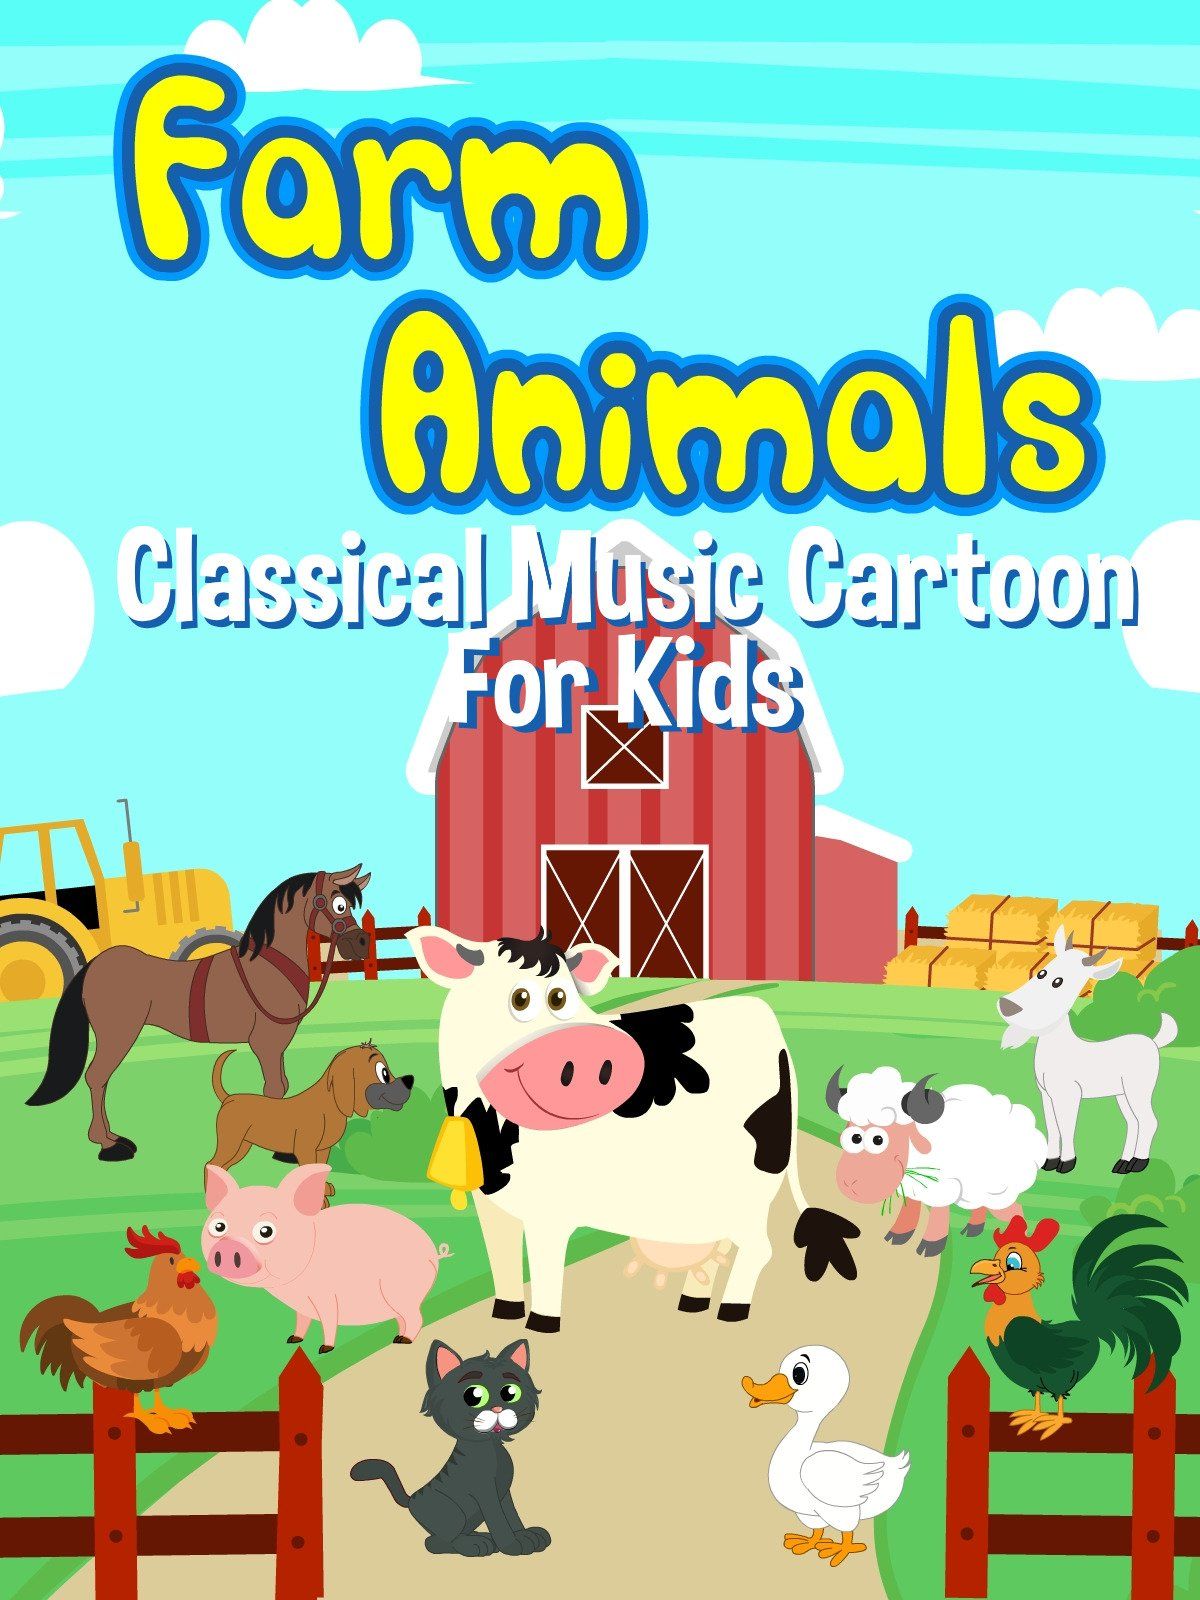 Farm Animals Classical Music Cartoon For Kids